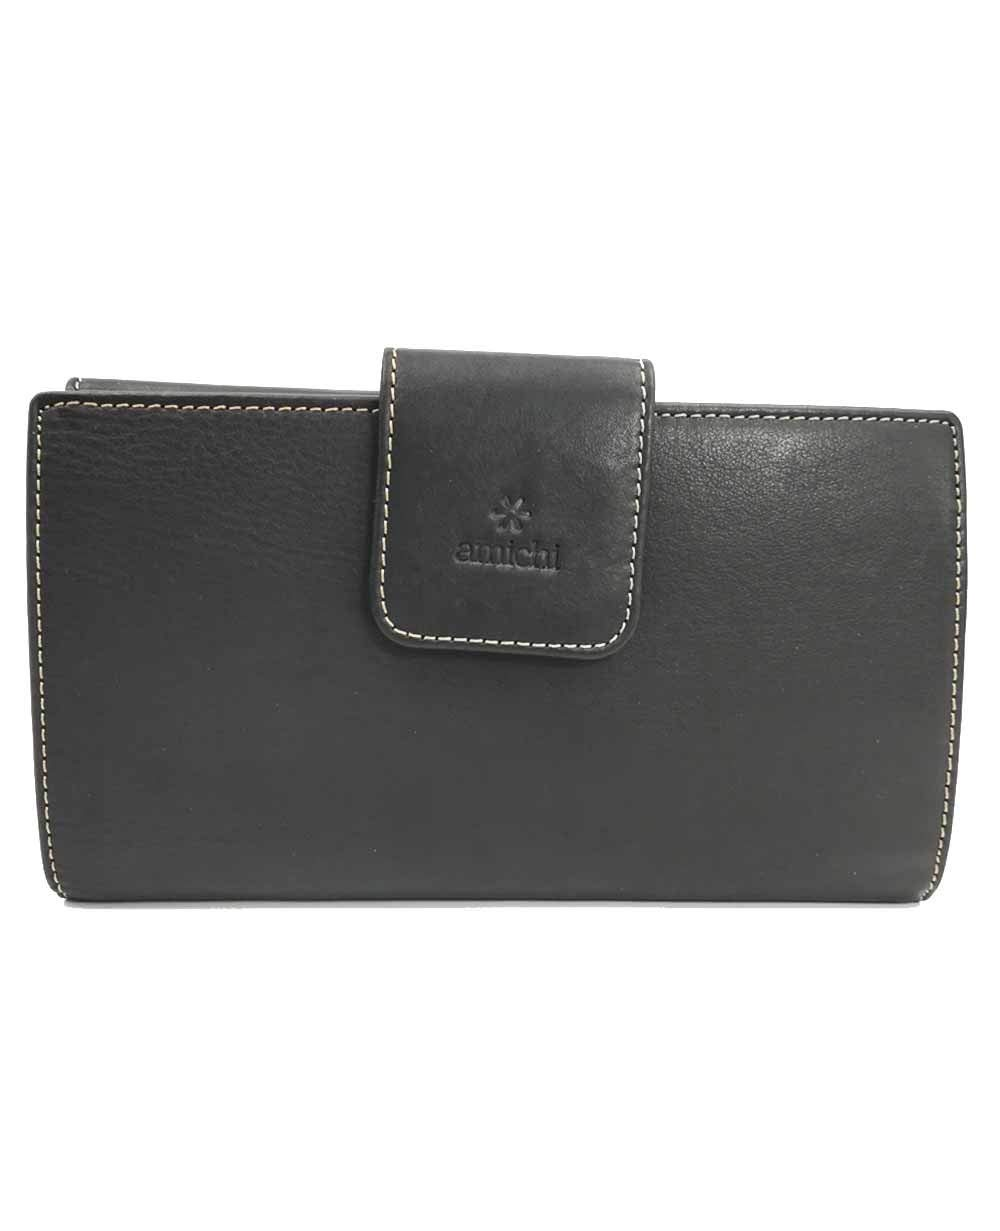 Amichi Floater Cartera Monedero Piel Negro 20cm: Amazon.es ...